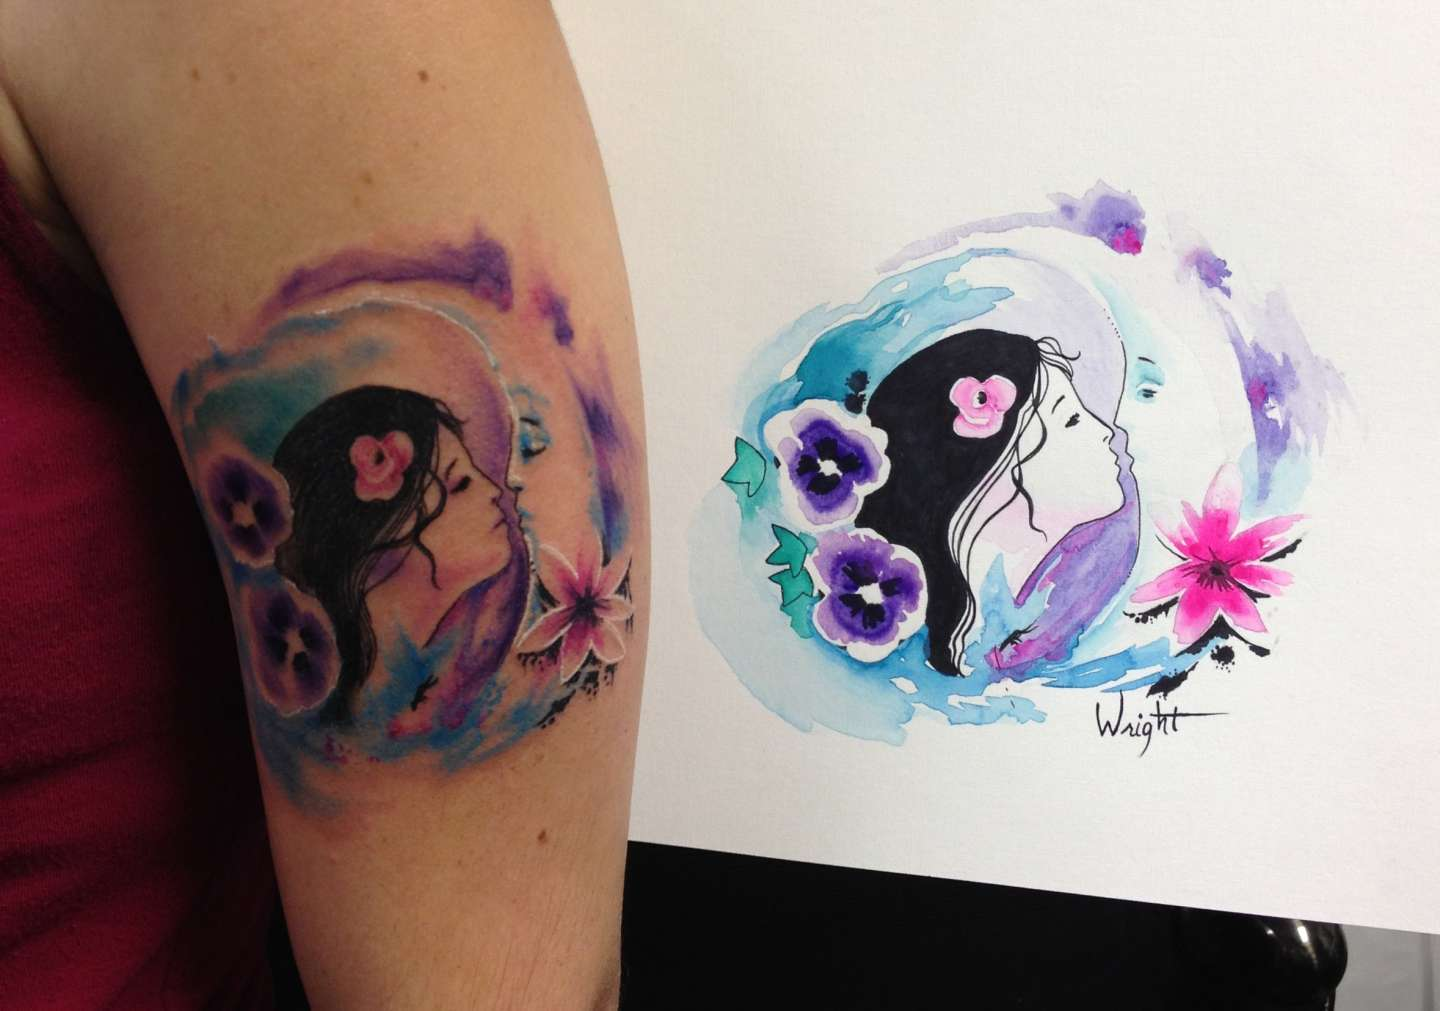 Tatuaggio watercolor romantico